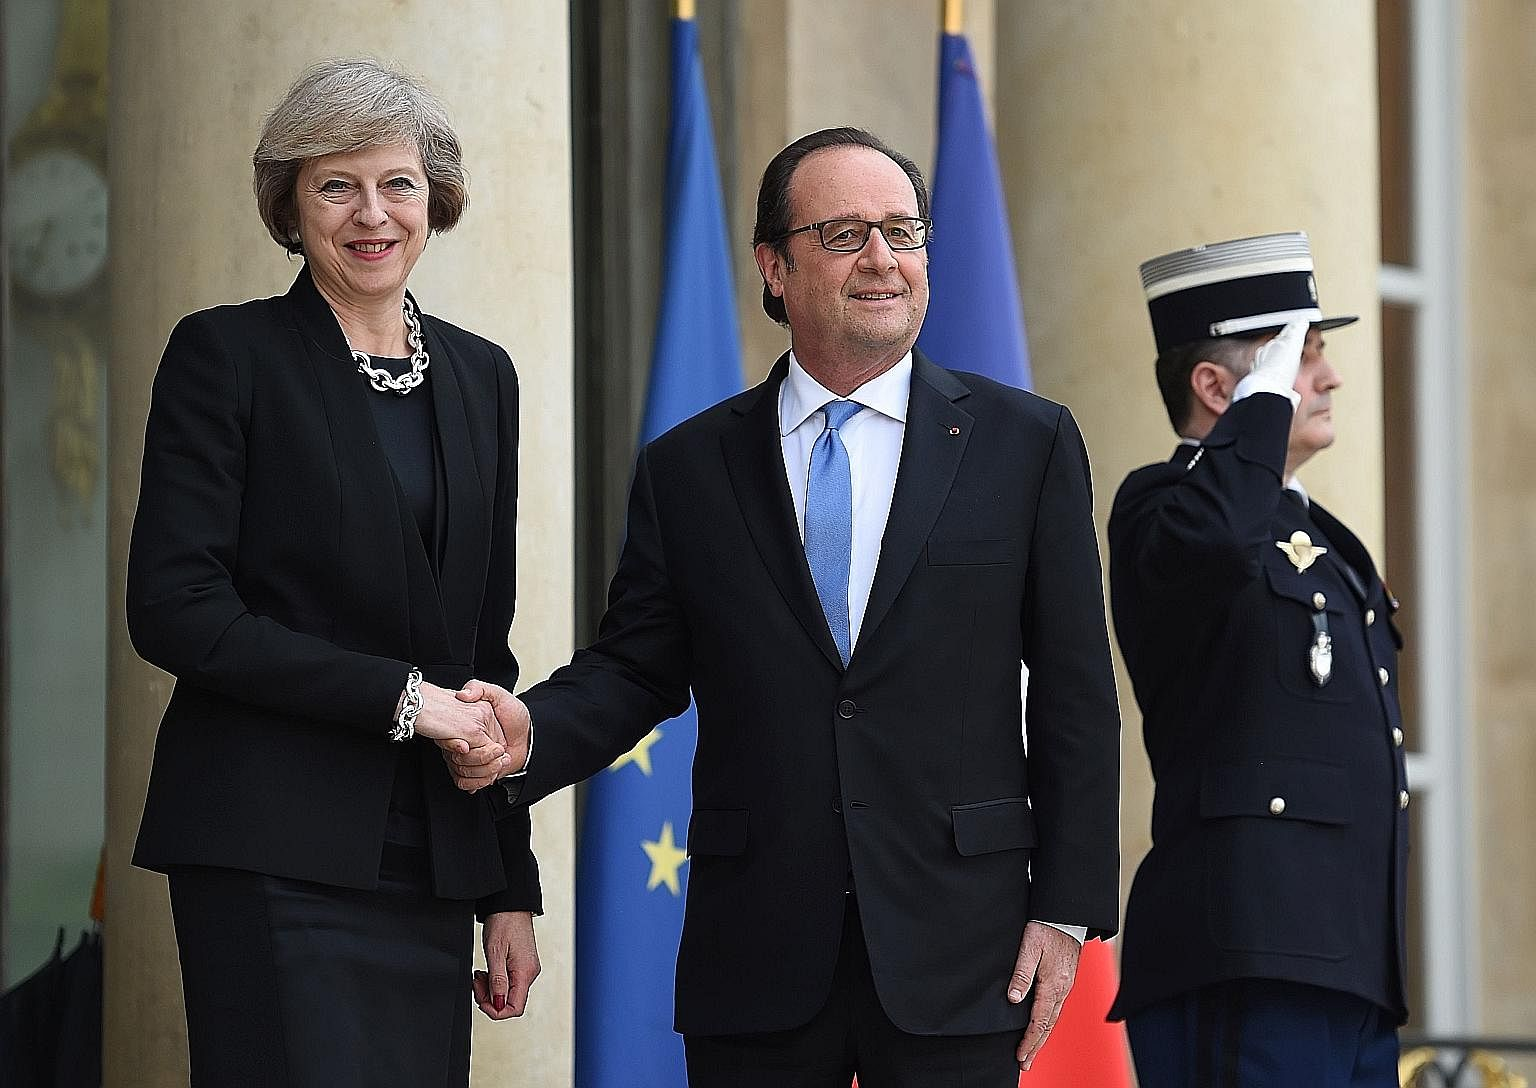 Mr Hollande welcoming Mrs May to the presidential Elysee Palace on Thursday.